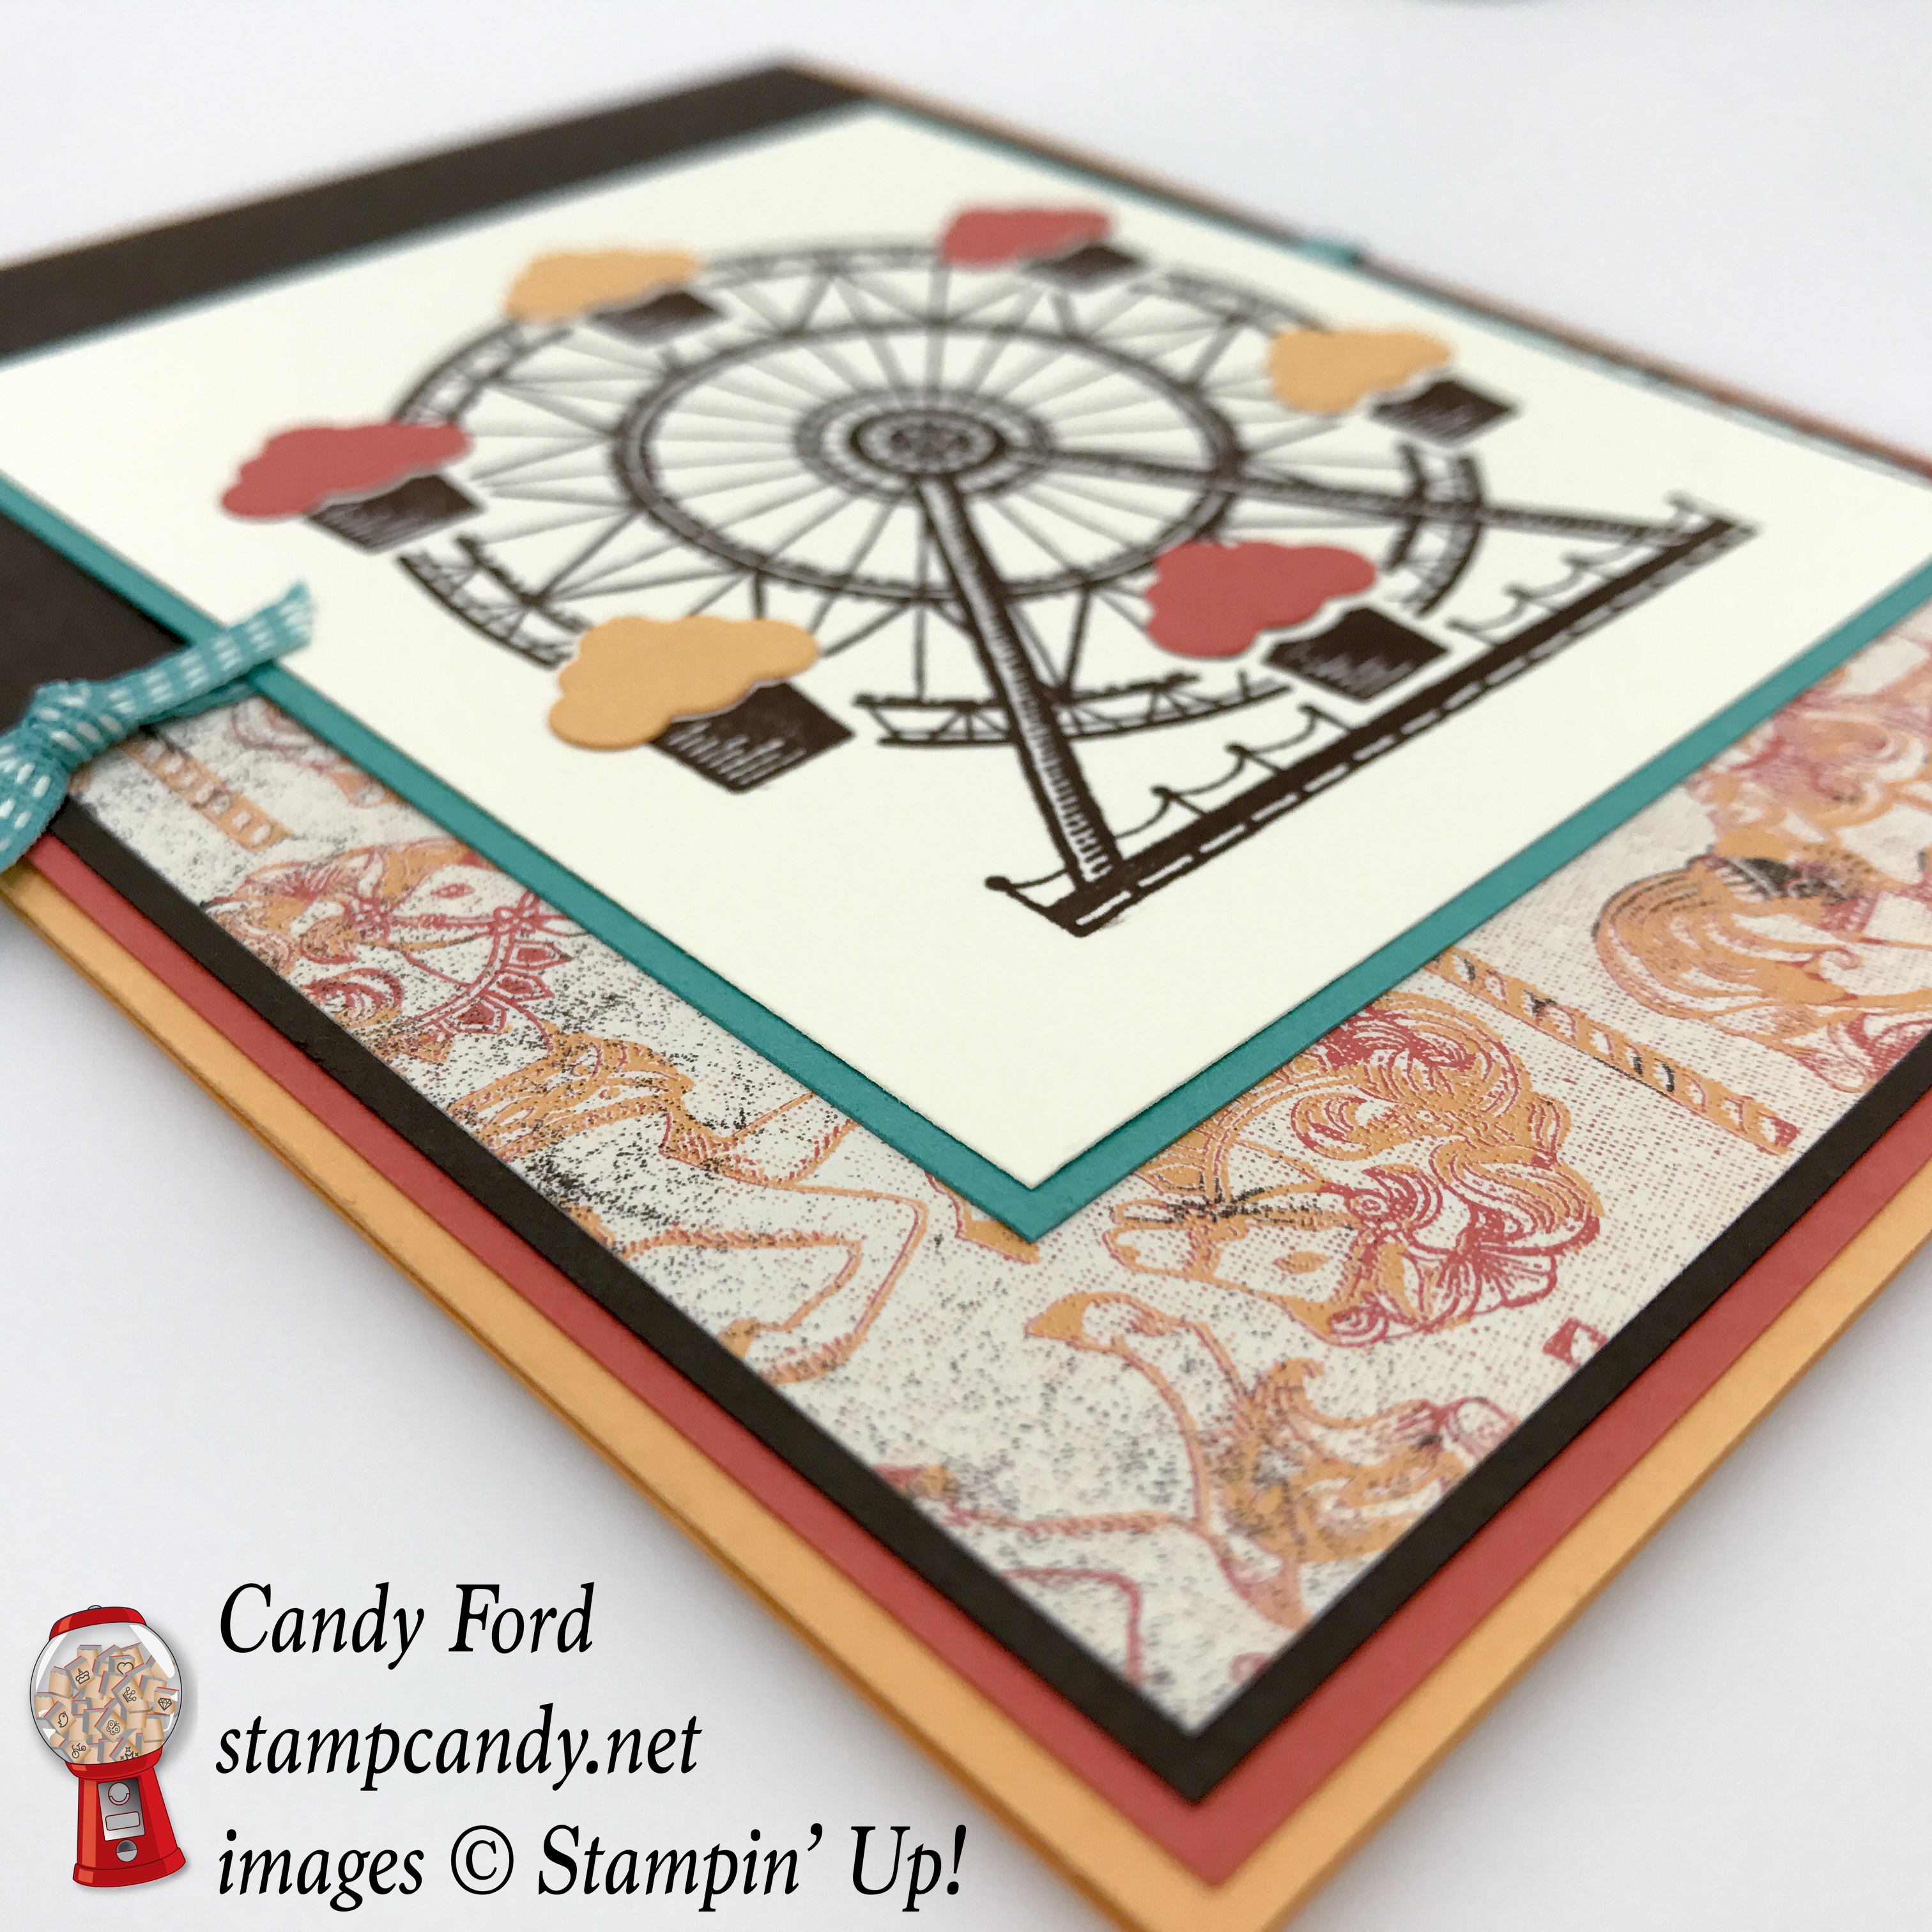 Come to stampcandy.net to learn how to make this fun birthday card using the Carousel Birthday stamp set, Cupcakes & Carousels DSP, Up & Away Thinlits Dies, #stampcandy